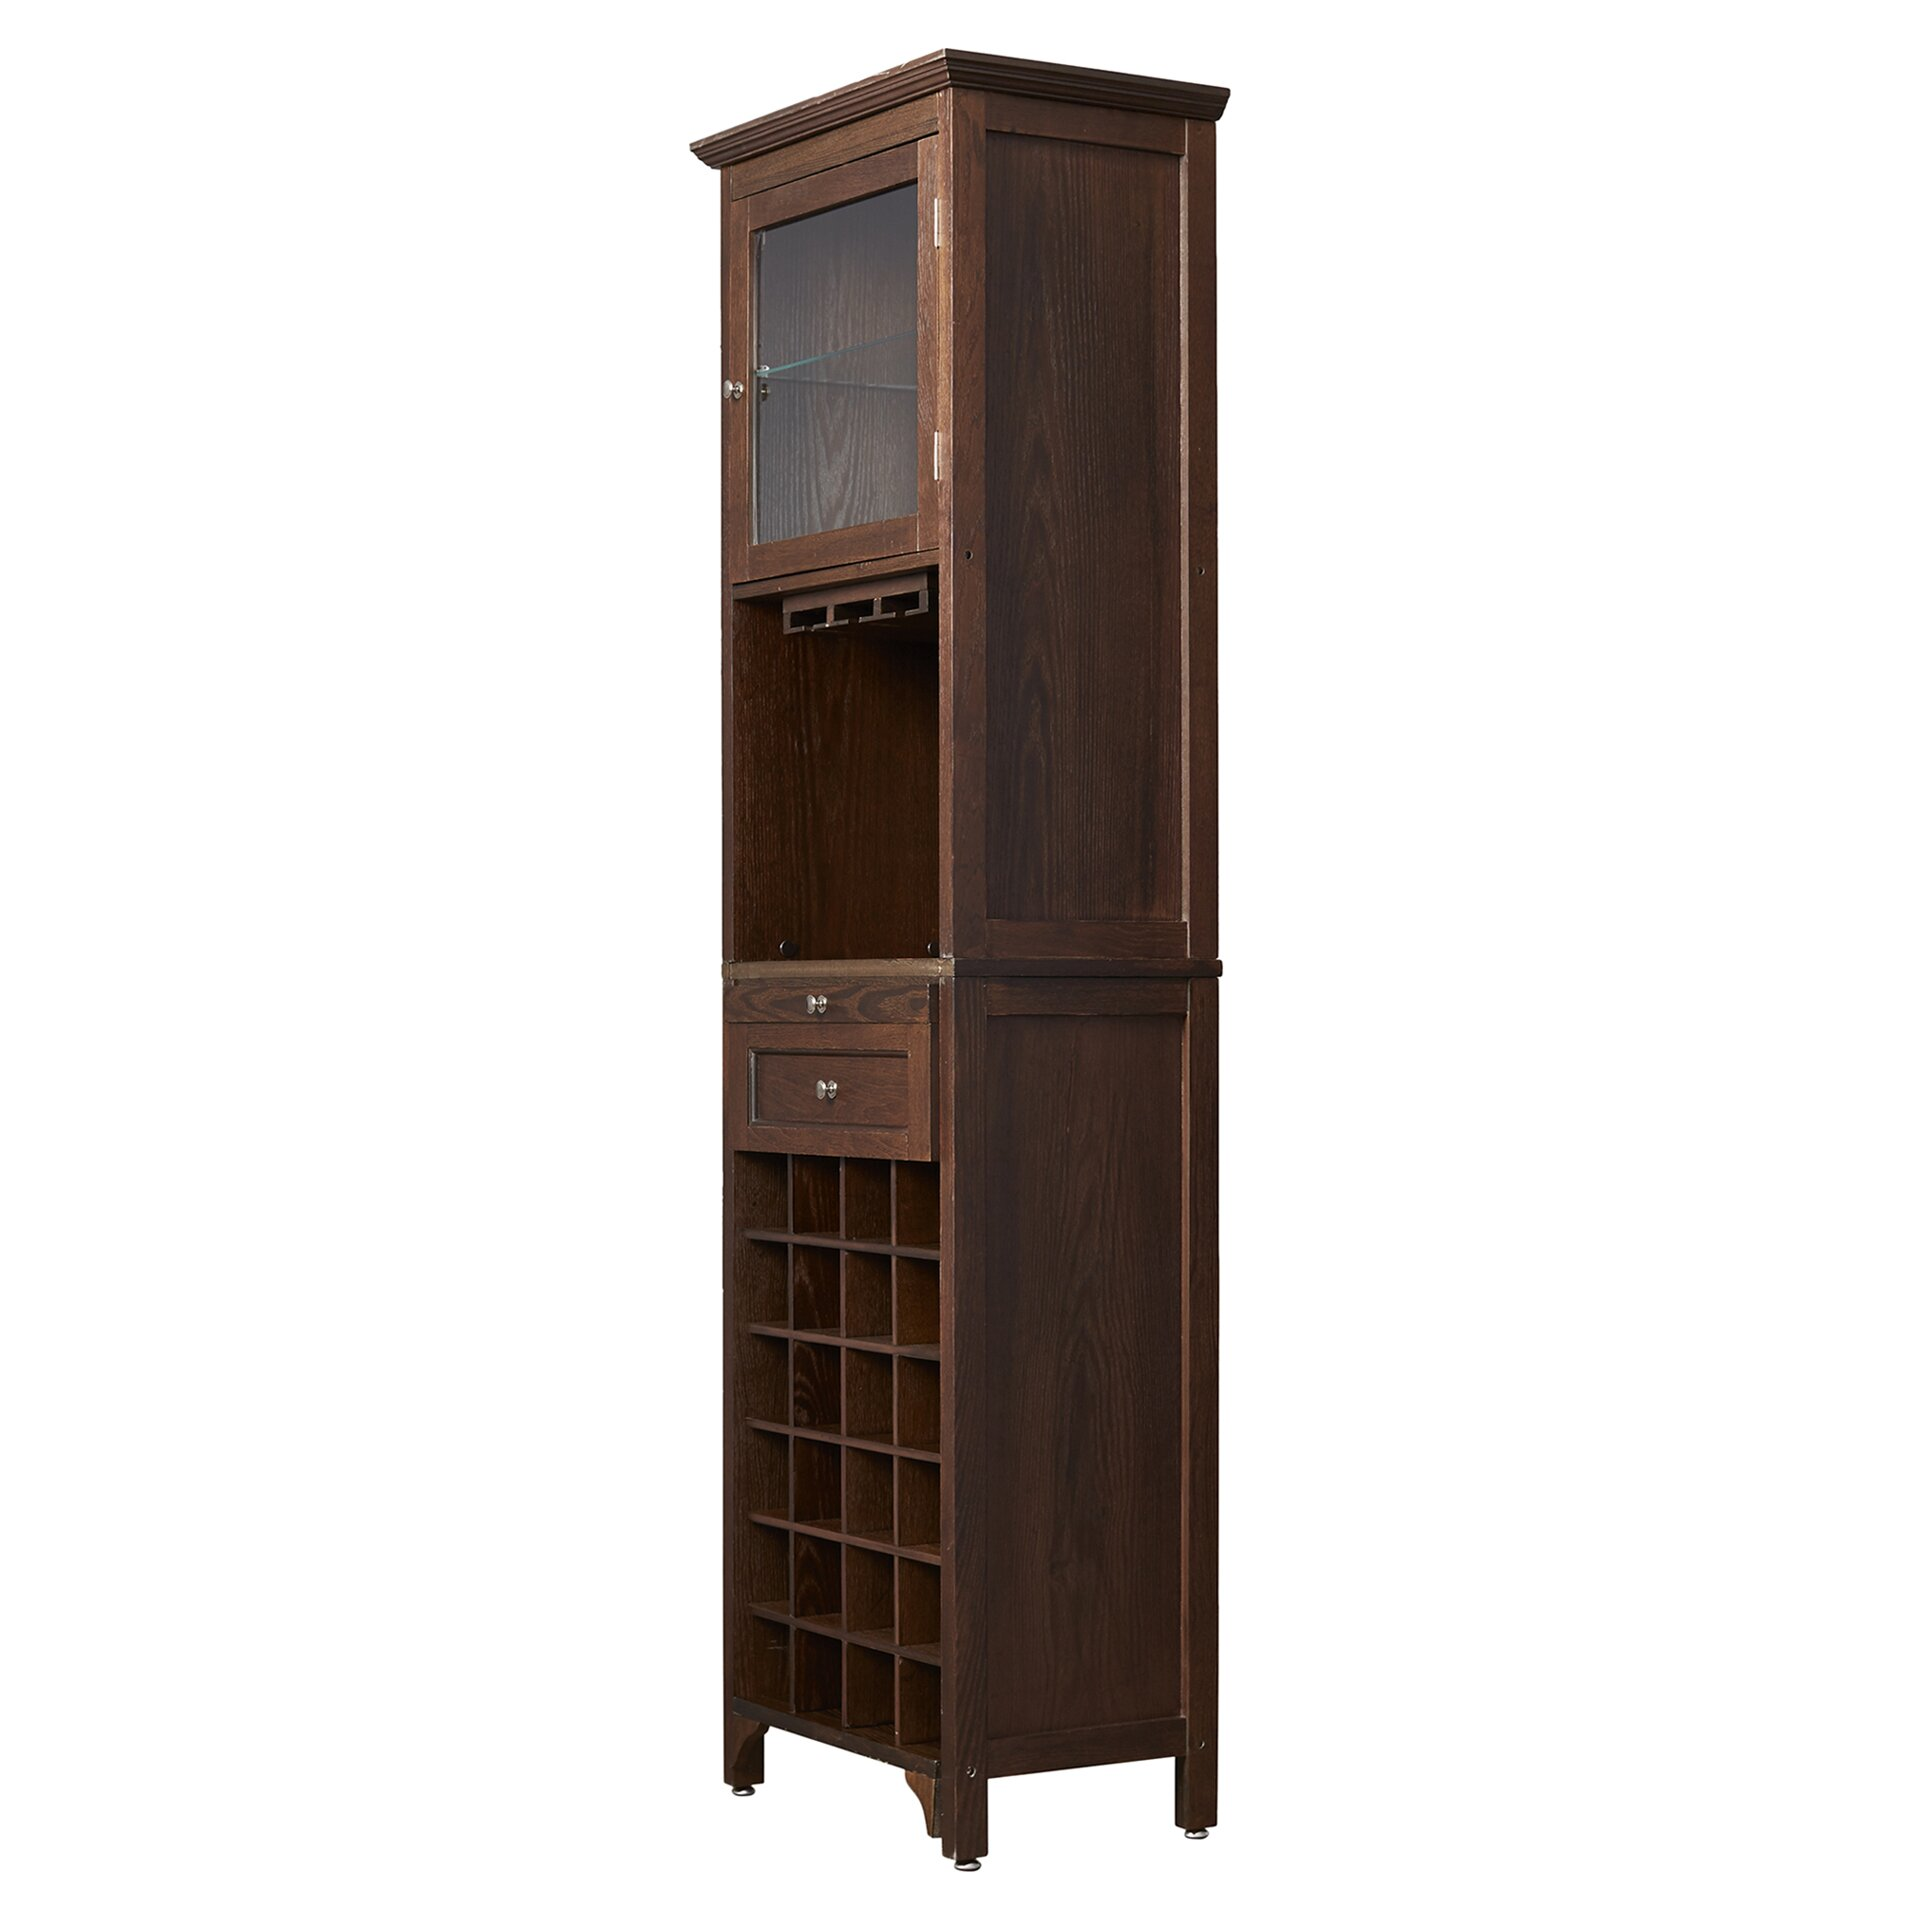 Darby home co mccar 24 bottle floor wine cabinet reviews for Floor wine cabinet